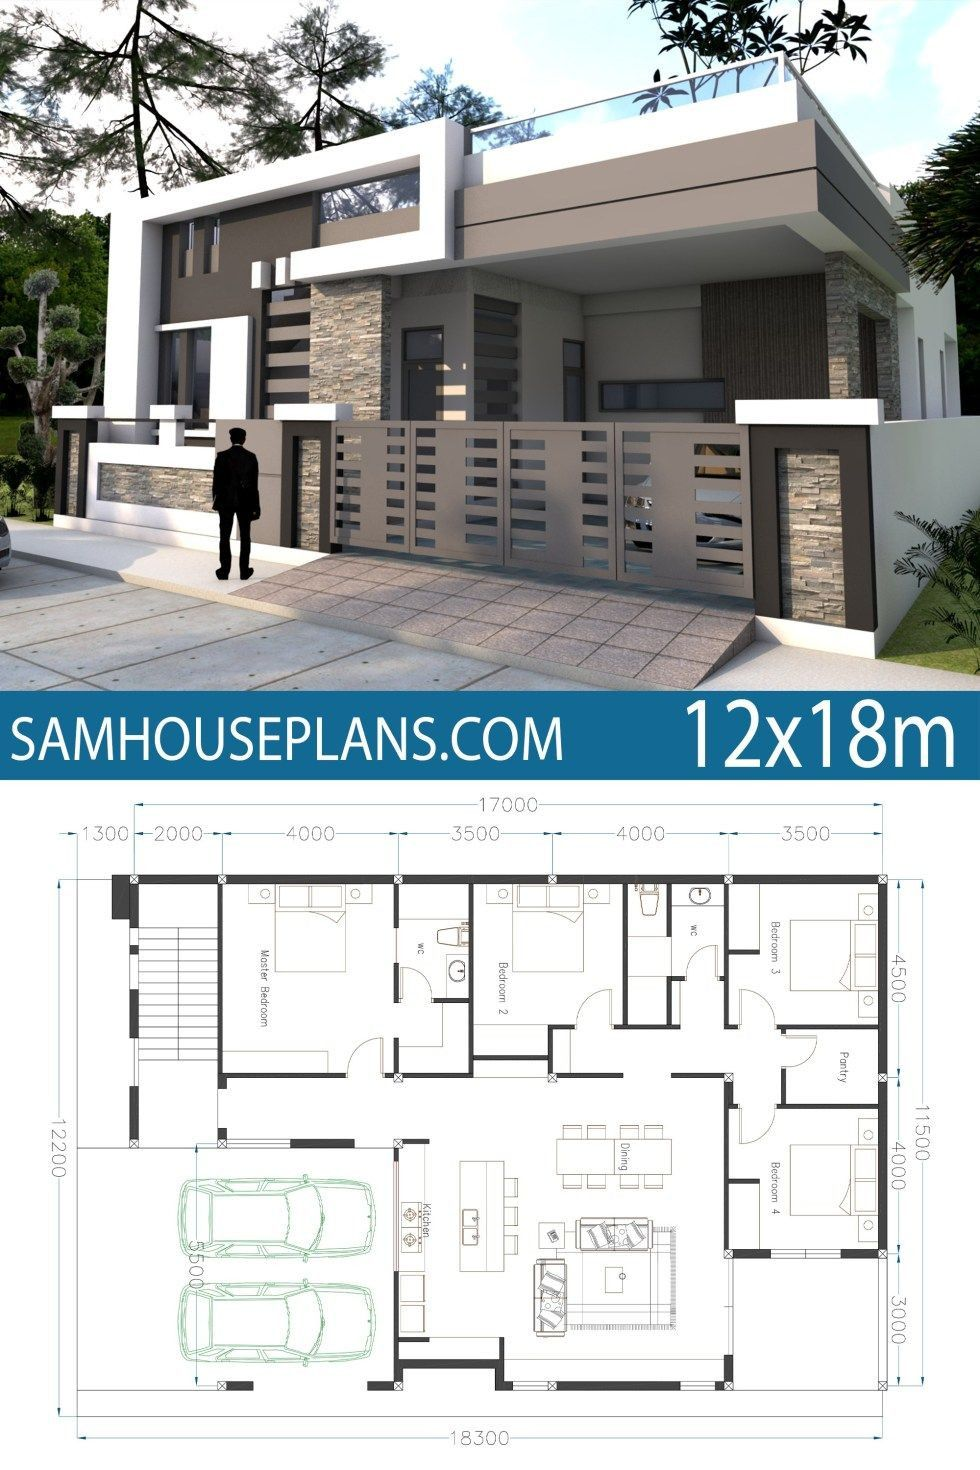 3 Modern House Design Plans Single Story Home Design 40x60f With 4 Bedrooms Desain Rumah Rumah Minimalis Rumah Impian